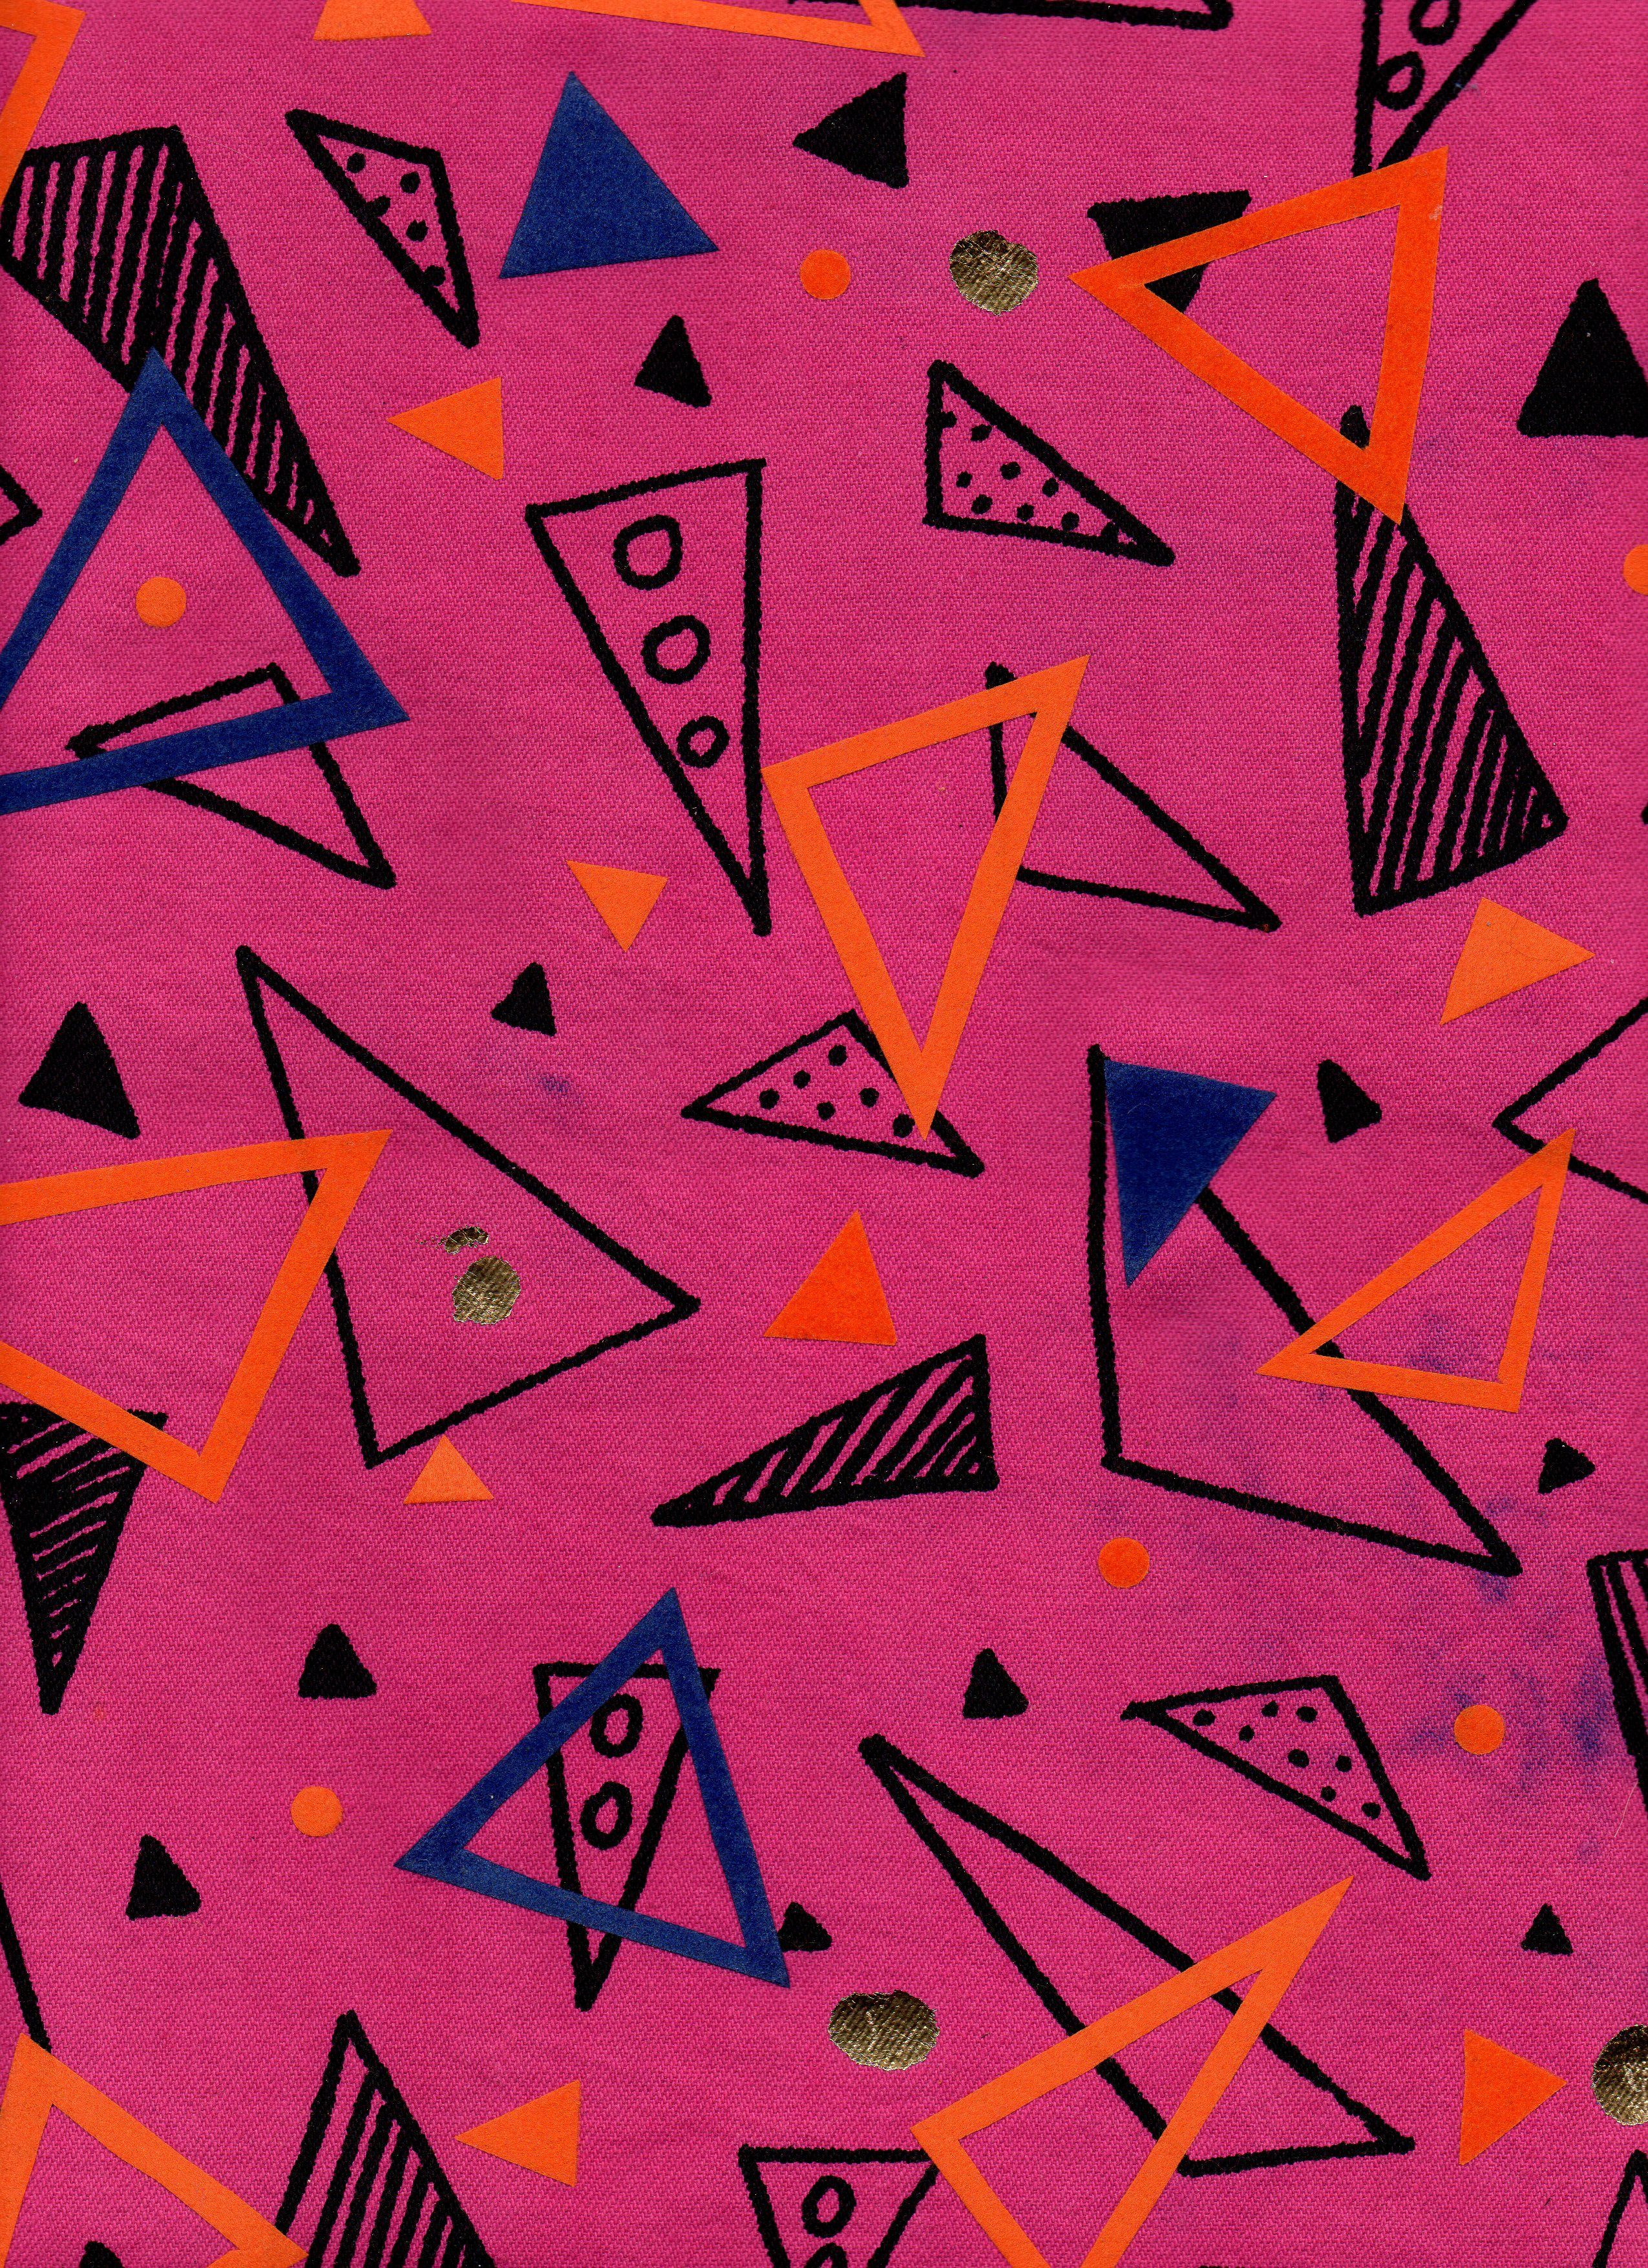 Hipster Pink Wallpapers - Top Free Hipster Pink Backgrounds